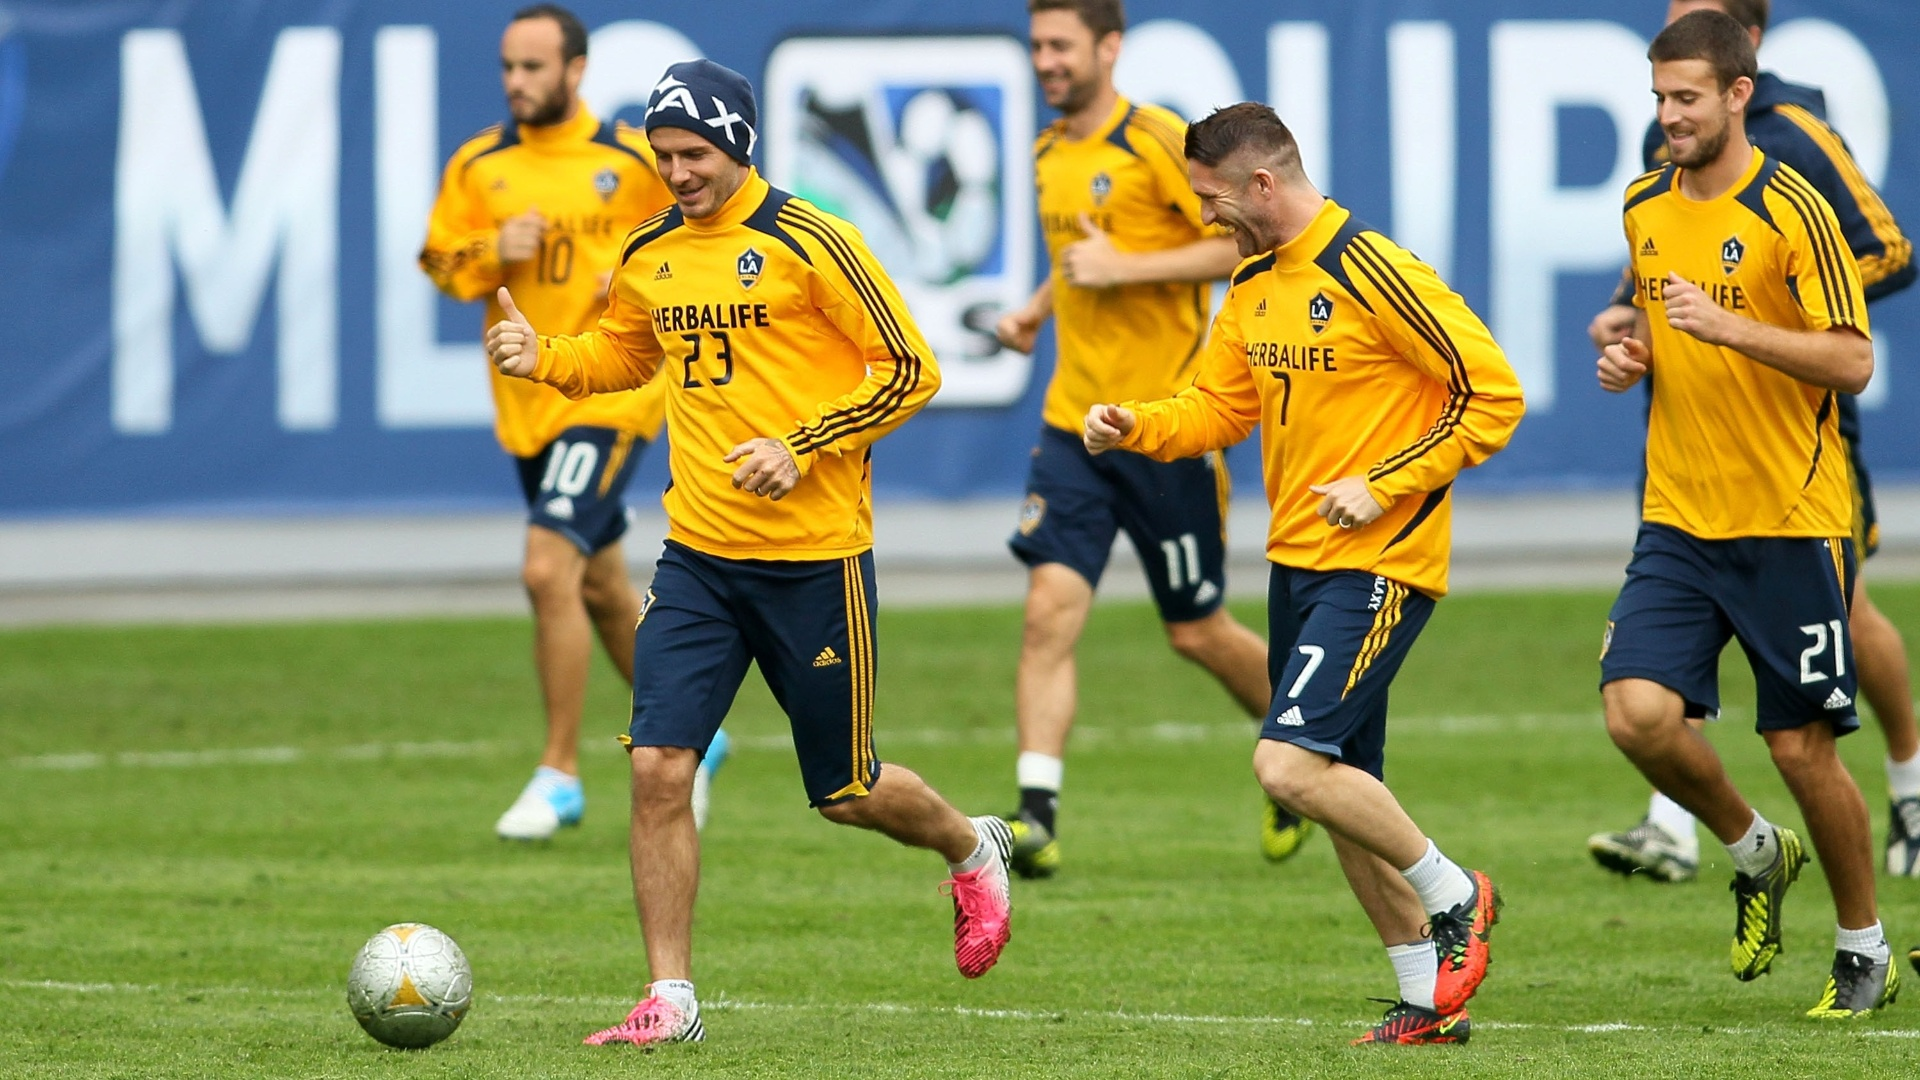 30.nov.2012 - David Beckham (23) conduz a bola durante treino do Los Angeles Galaxy, dos Estados Unidos